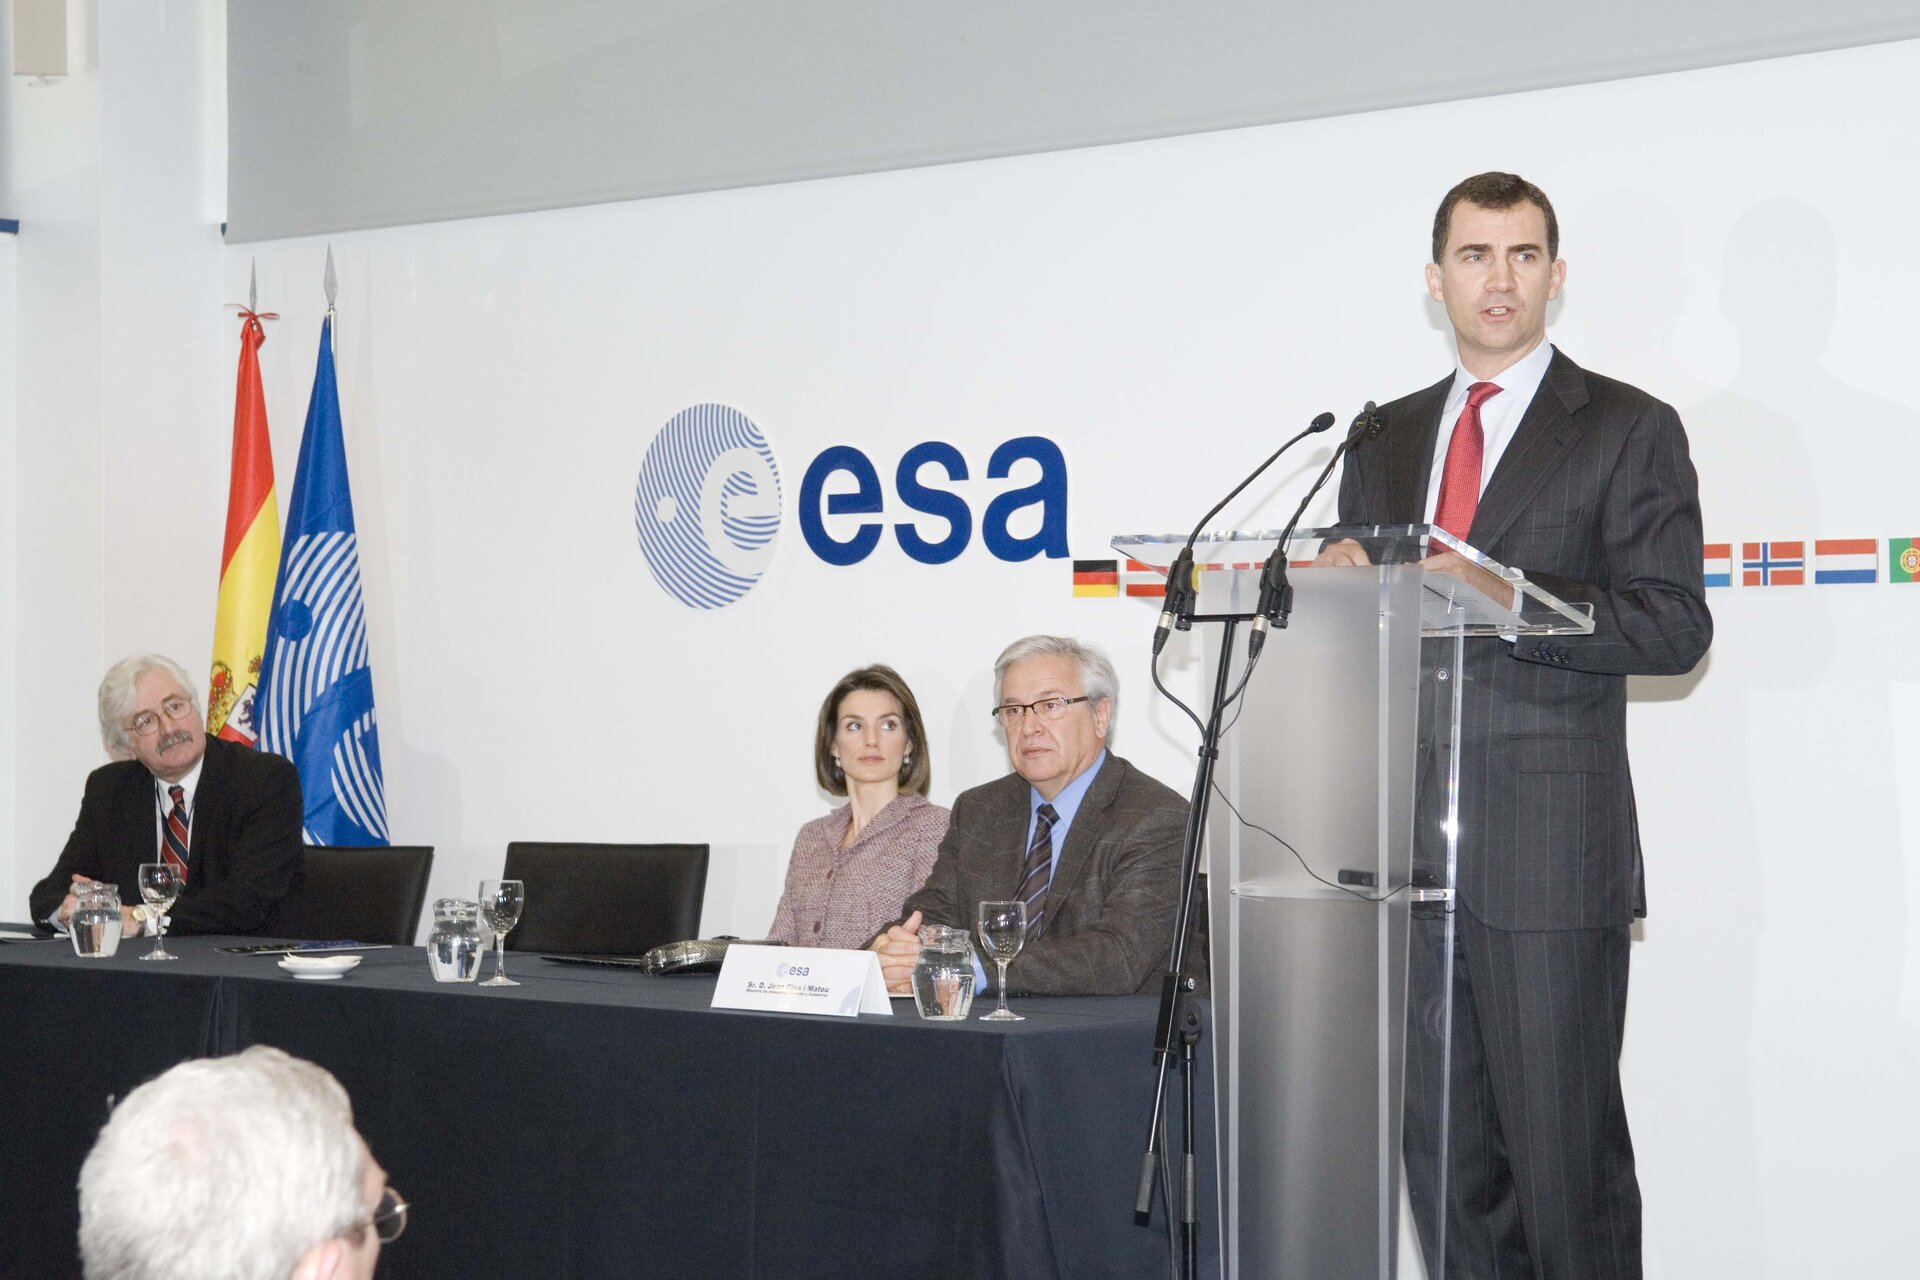 The Prince of Asturias speaking at the inauguration of ESAC